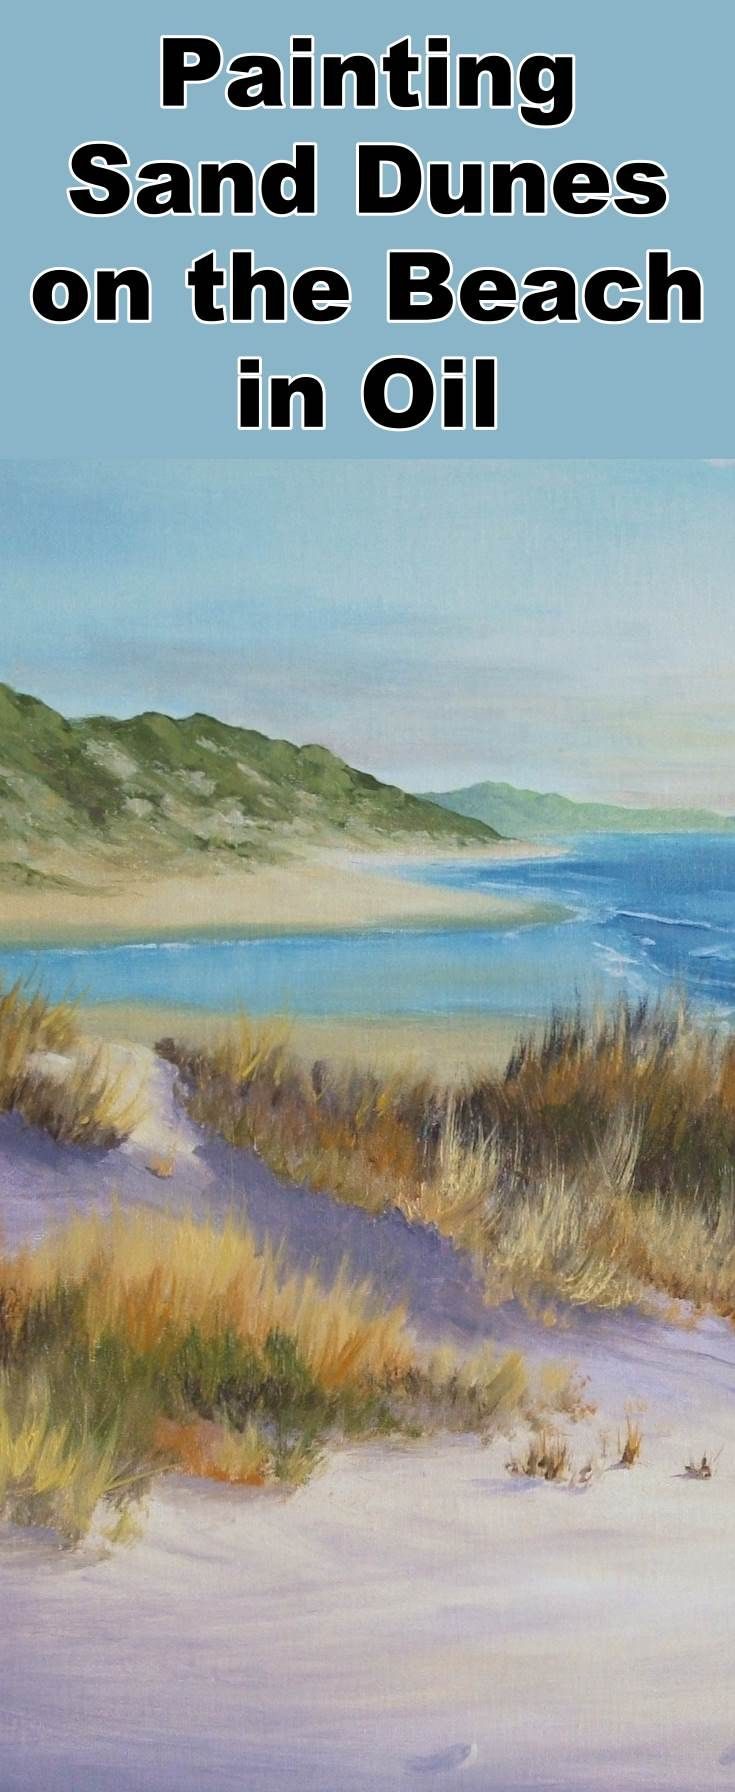 Learn how to paint sand dunes on the beach with this oil painting tutorial